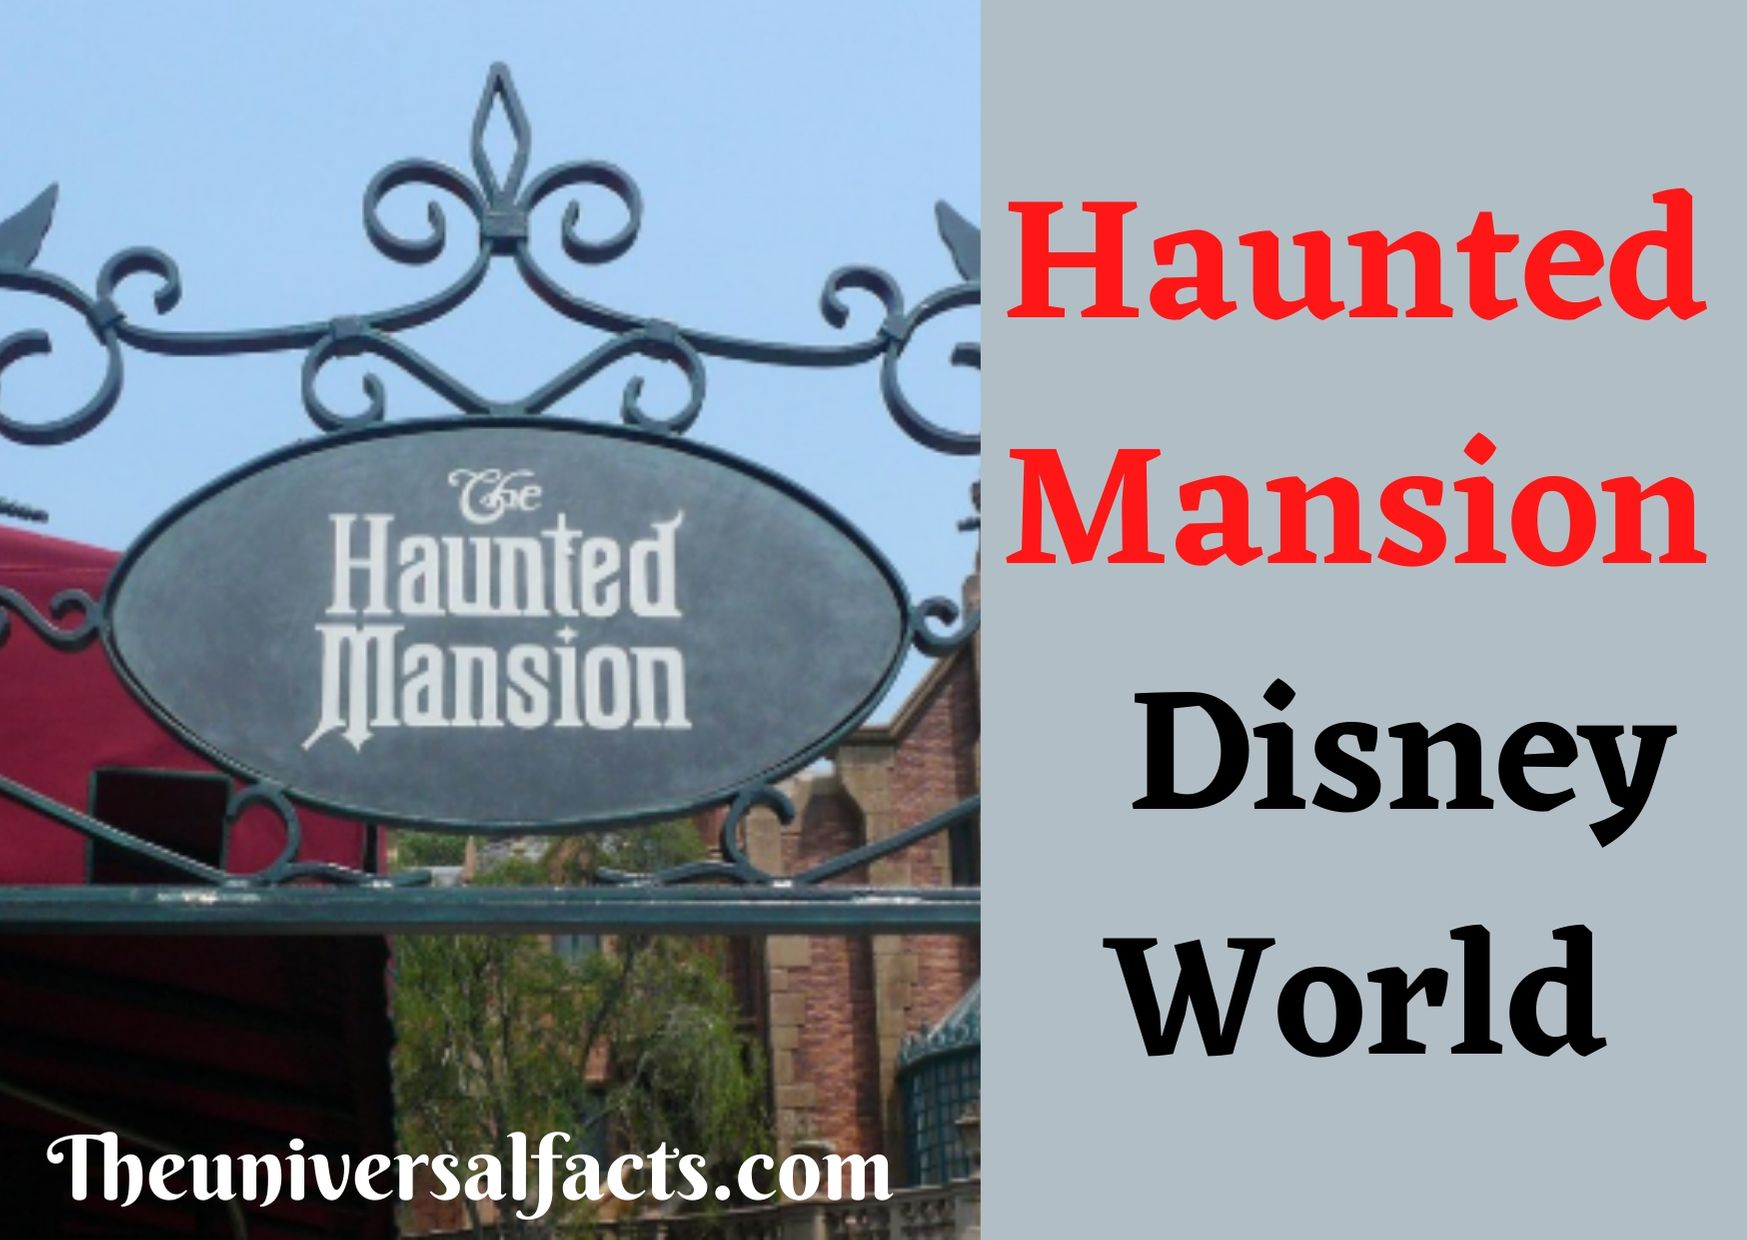 Haunted Mansion Disney World